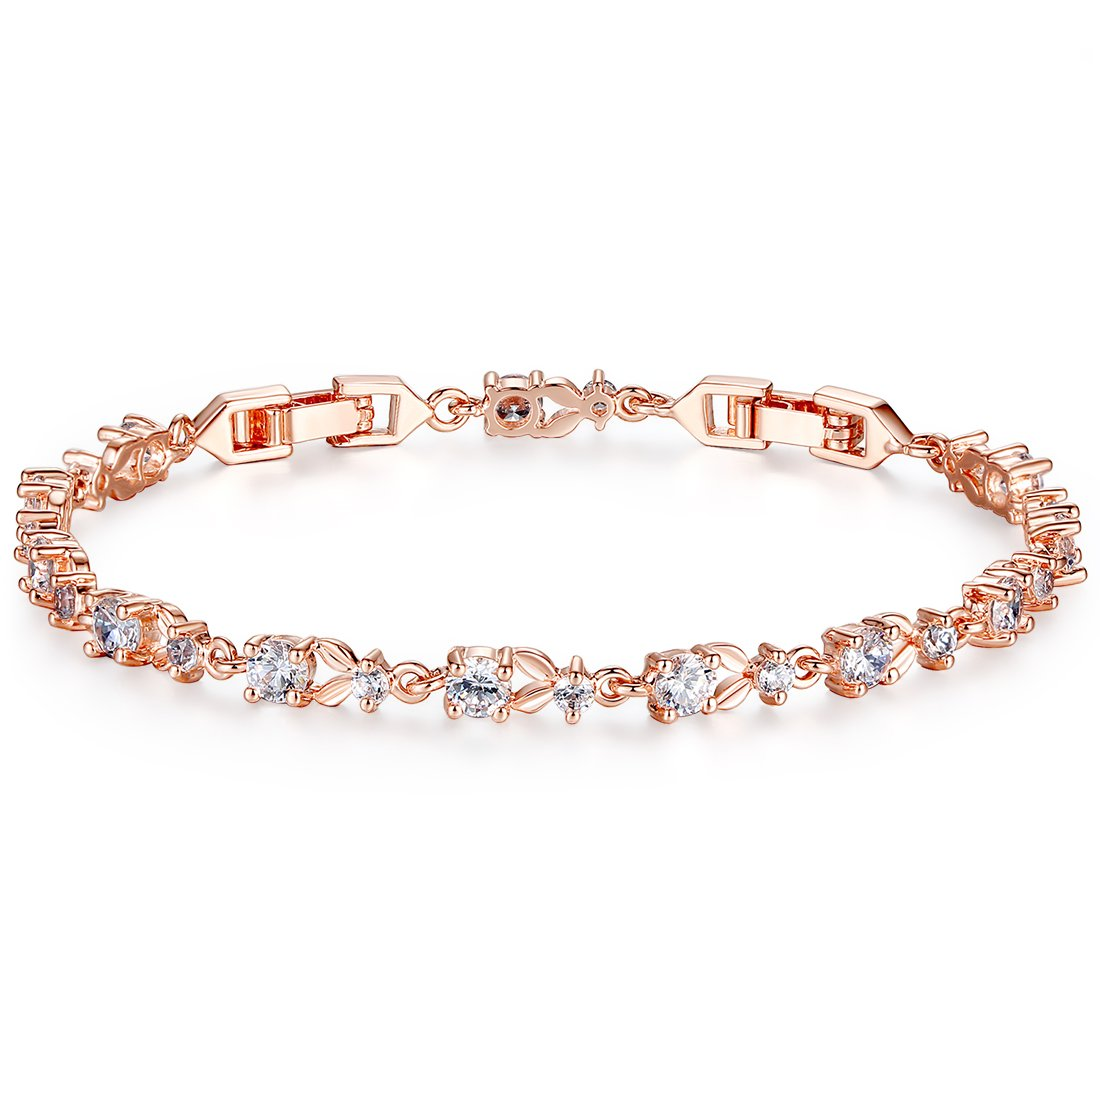 Bamoer Luxury Rose Gold Bracelets with Sparkling Clear Cubic Zirconia CZ Crystal Women Girls Charms Bangle